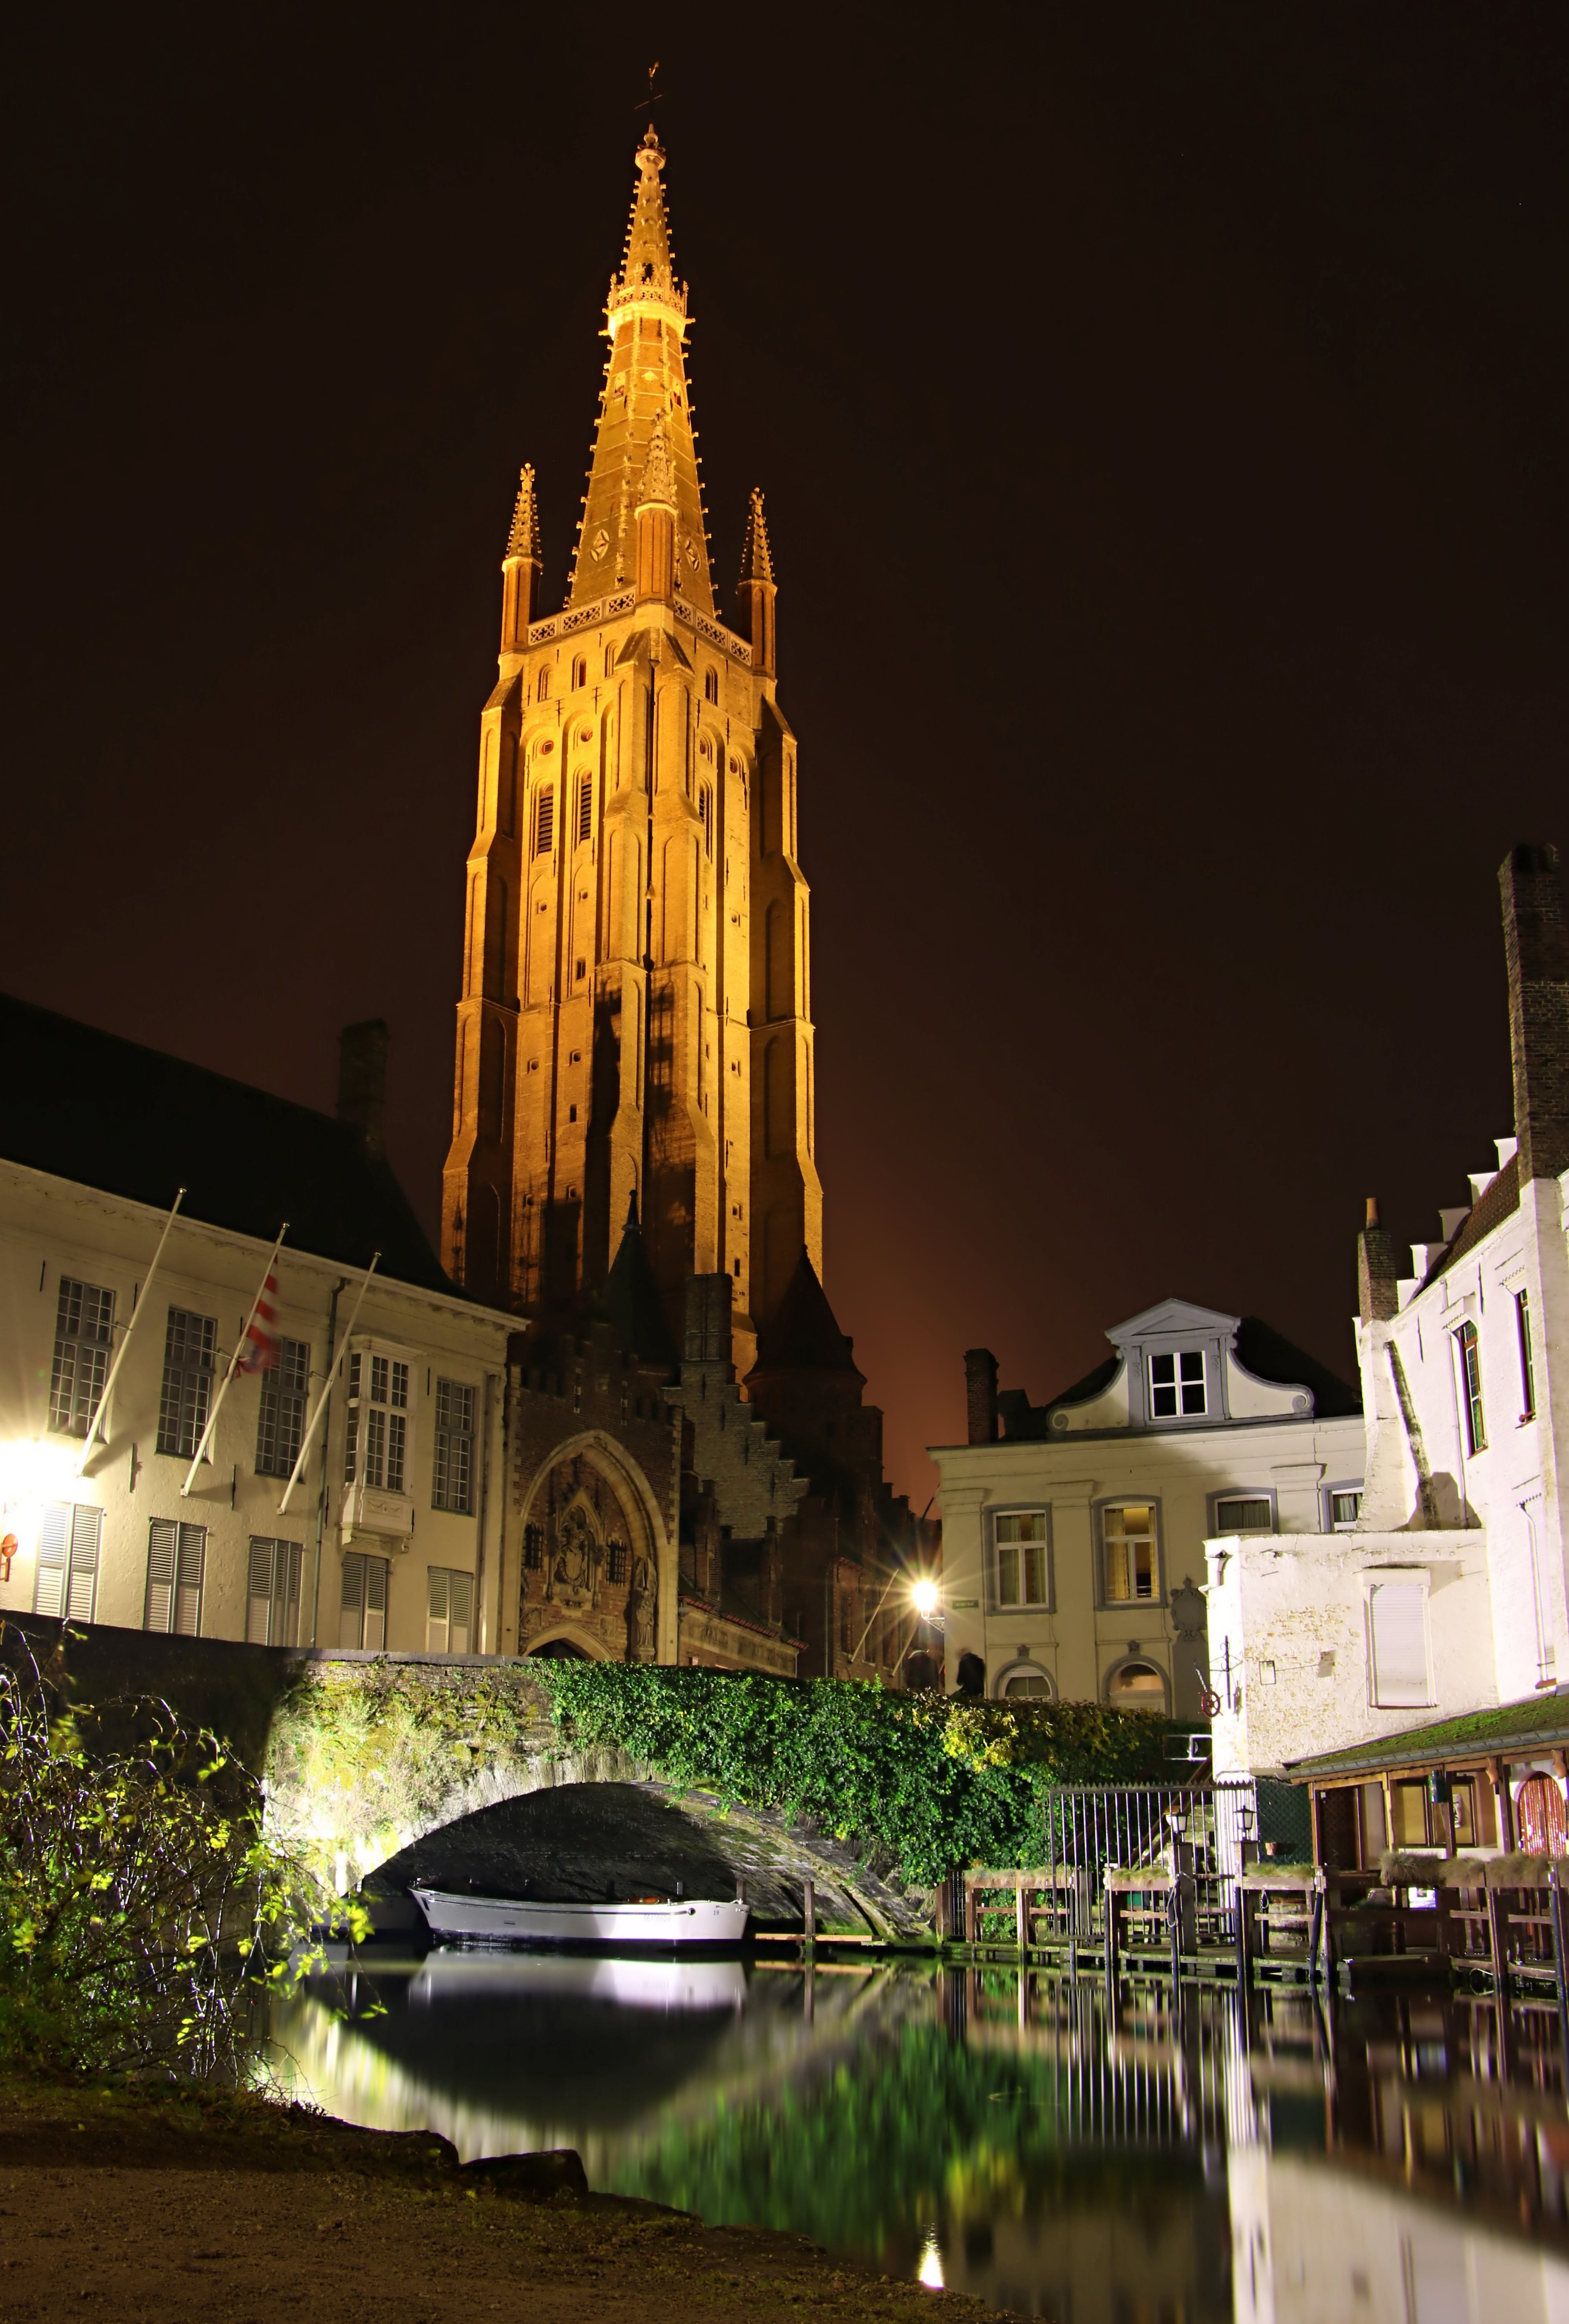 Free stock photo of church, night city, water colours